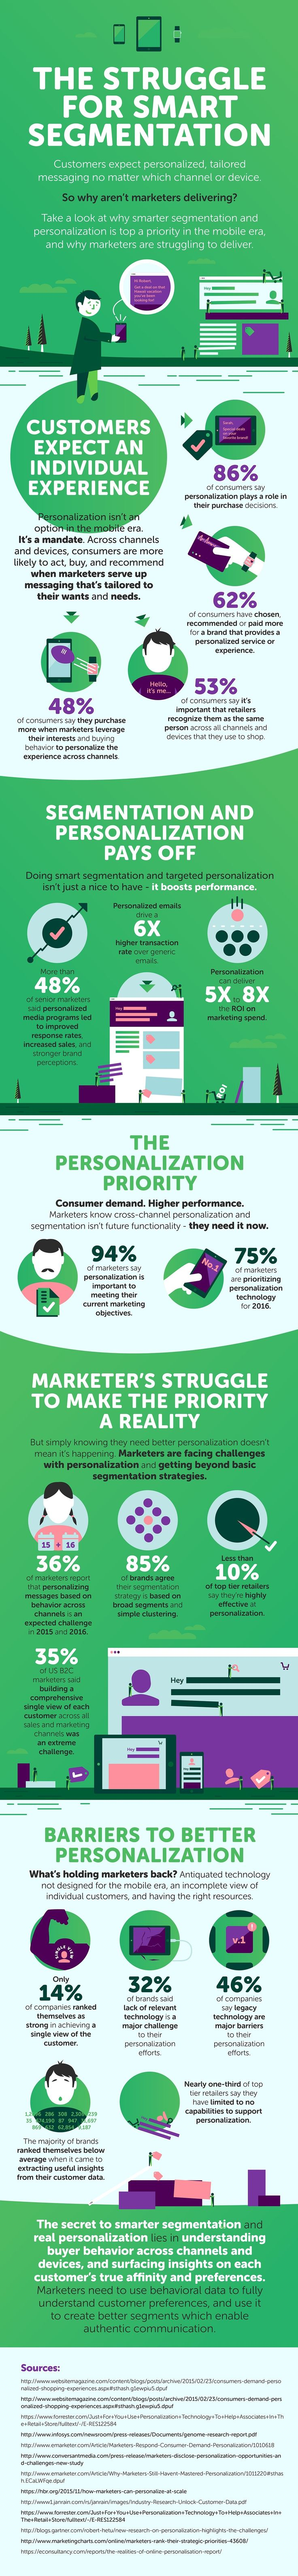 Market Segmentation and Personalization